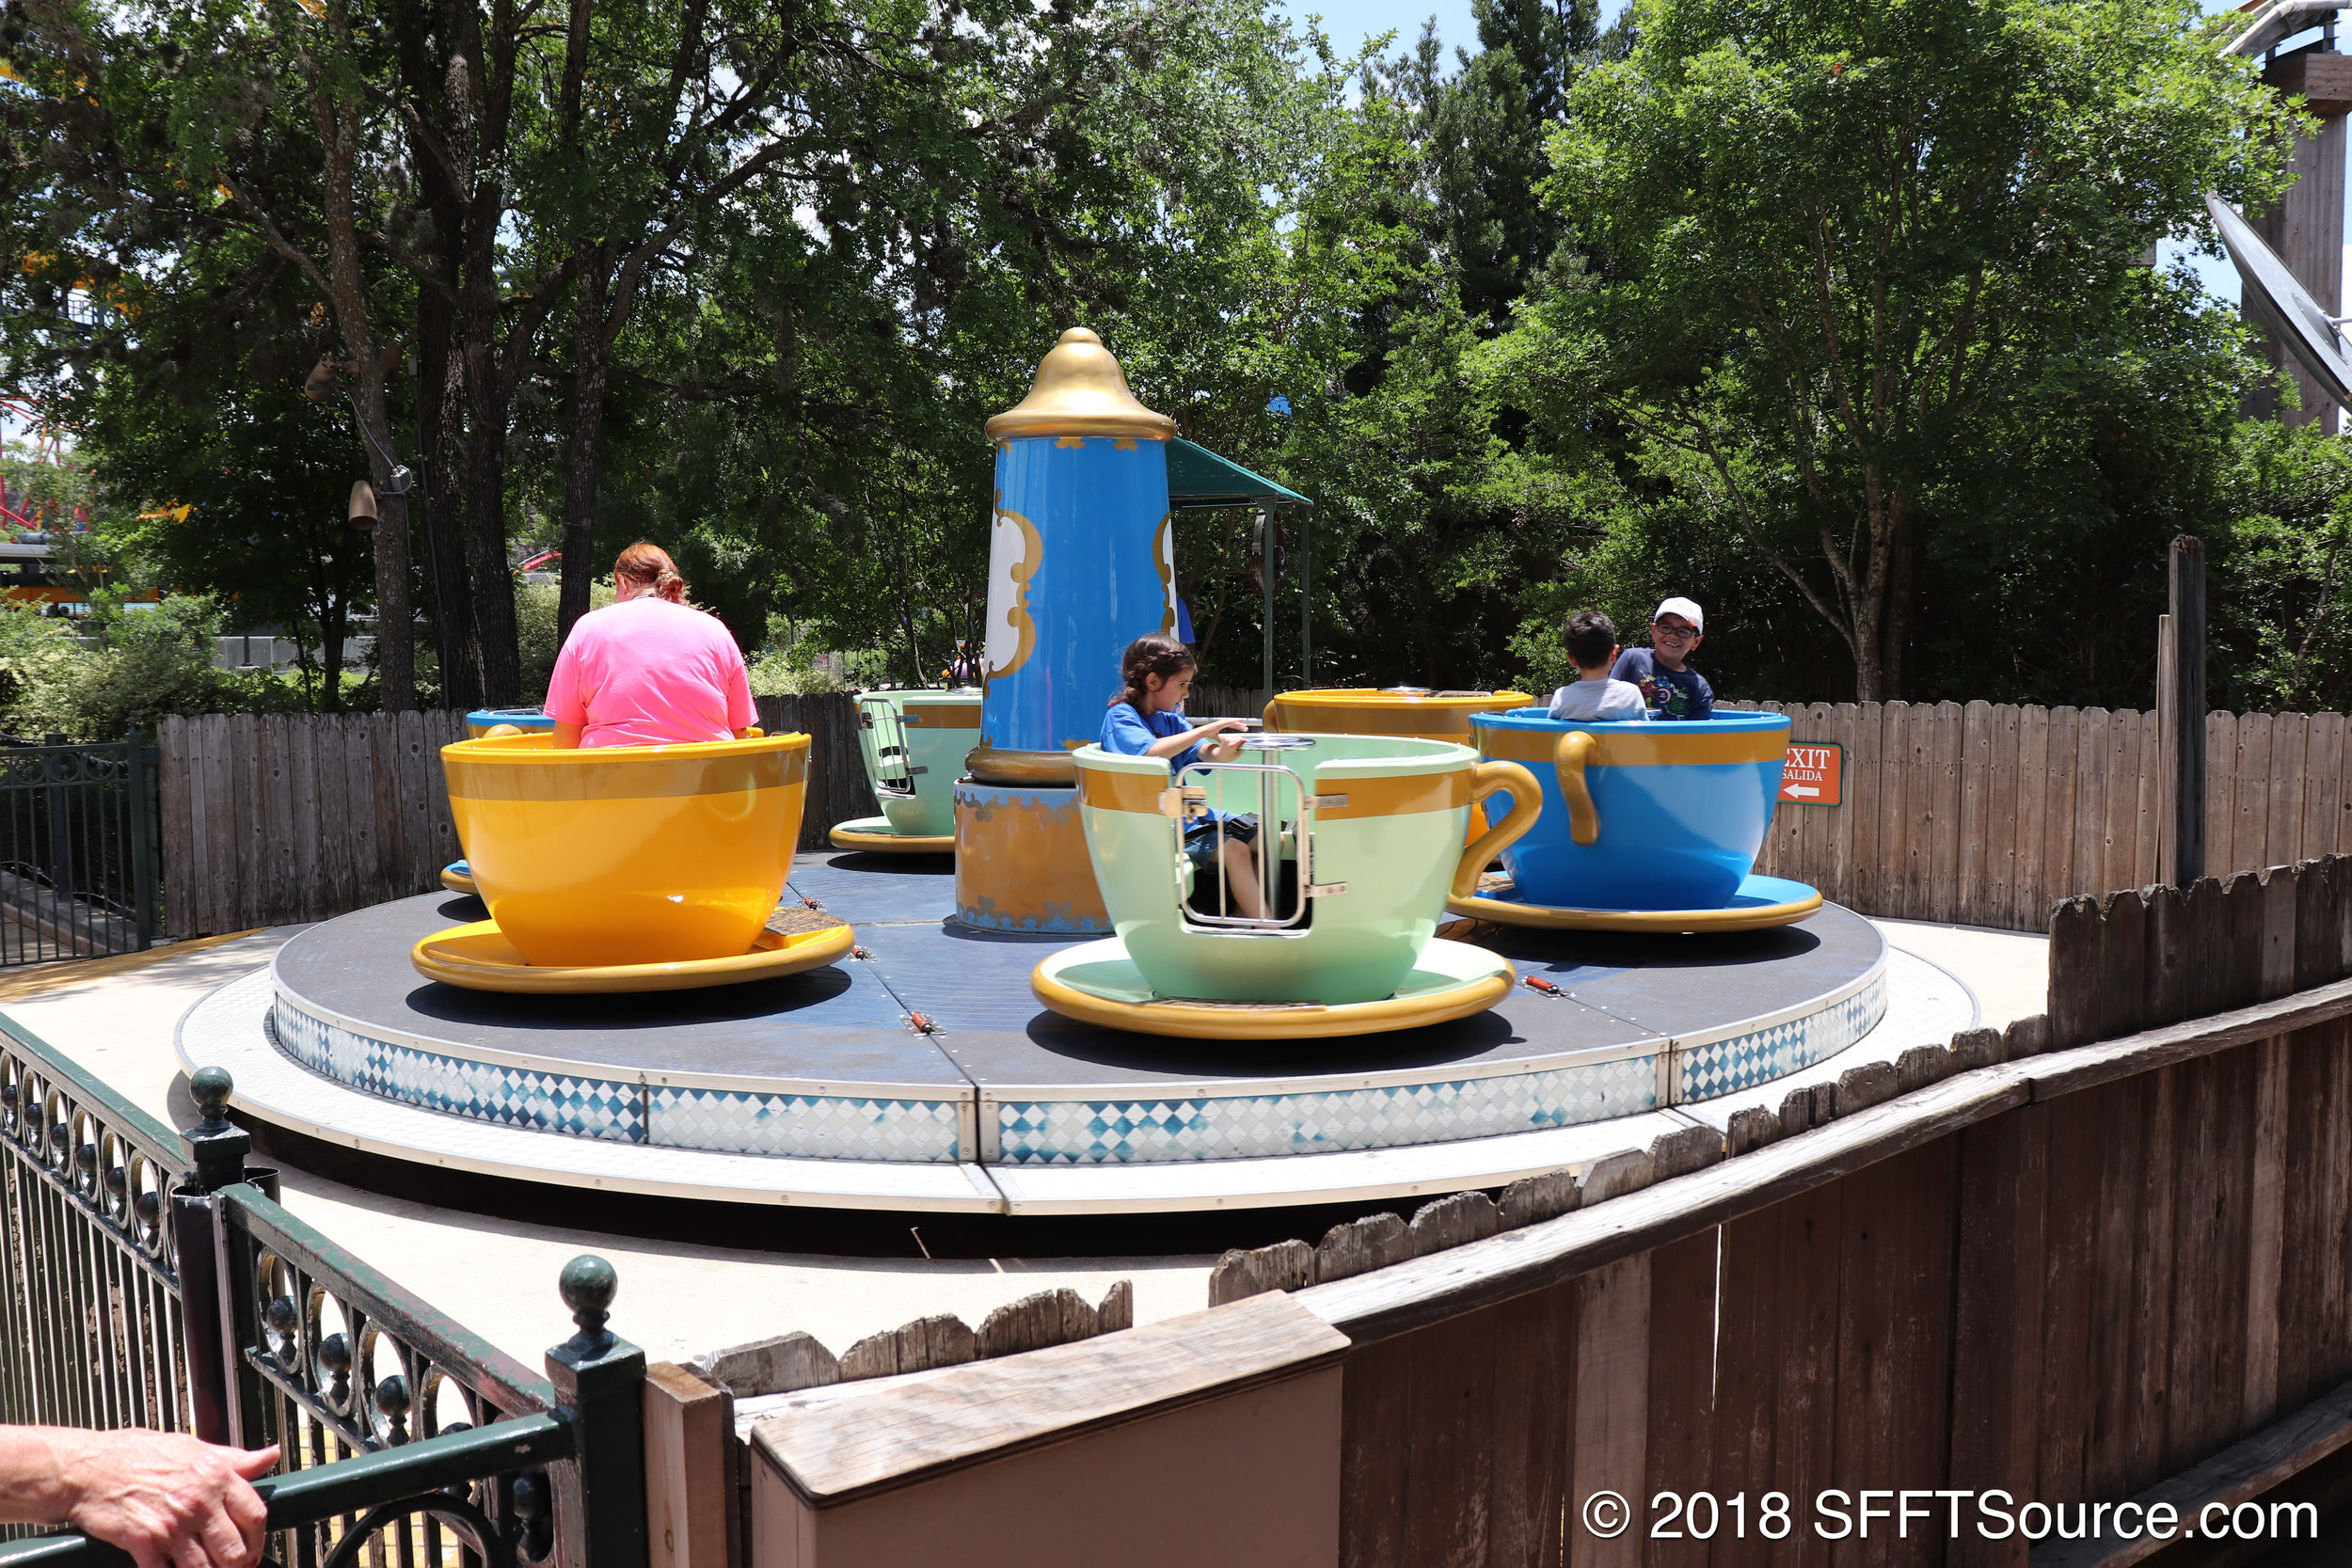 A closer look at the teacup seats of Kinderstein.